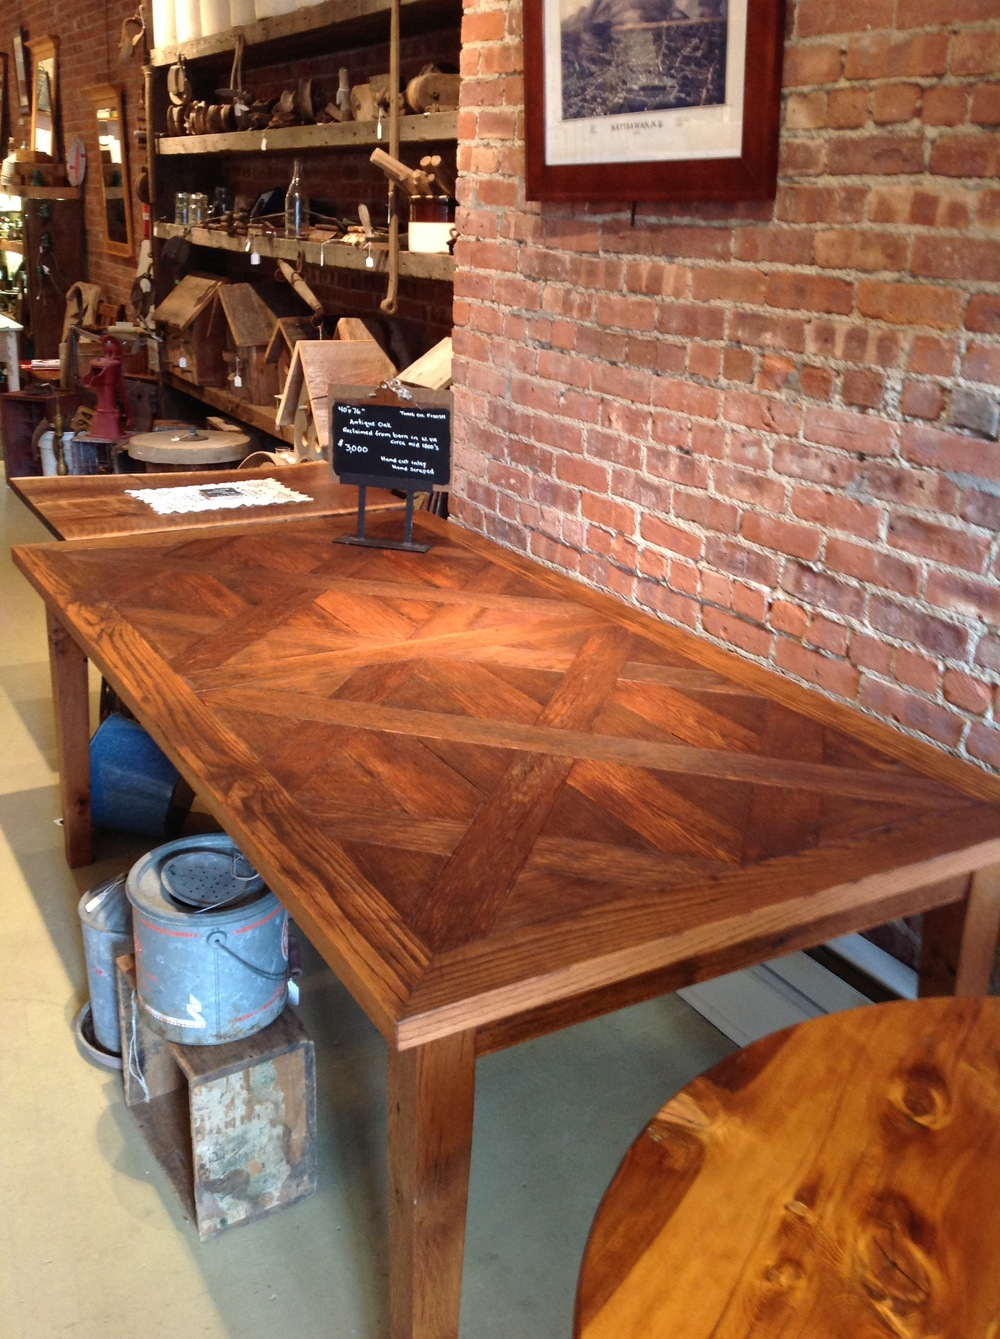 2. Herringbone Antique Oak